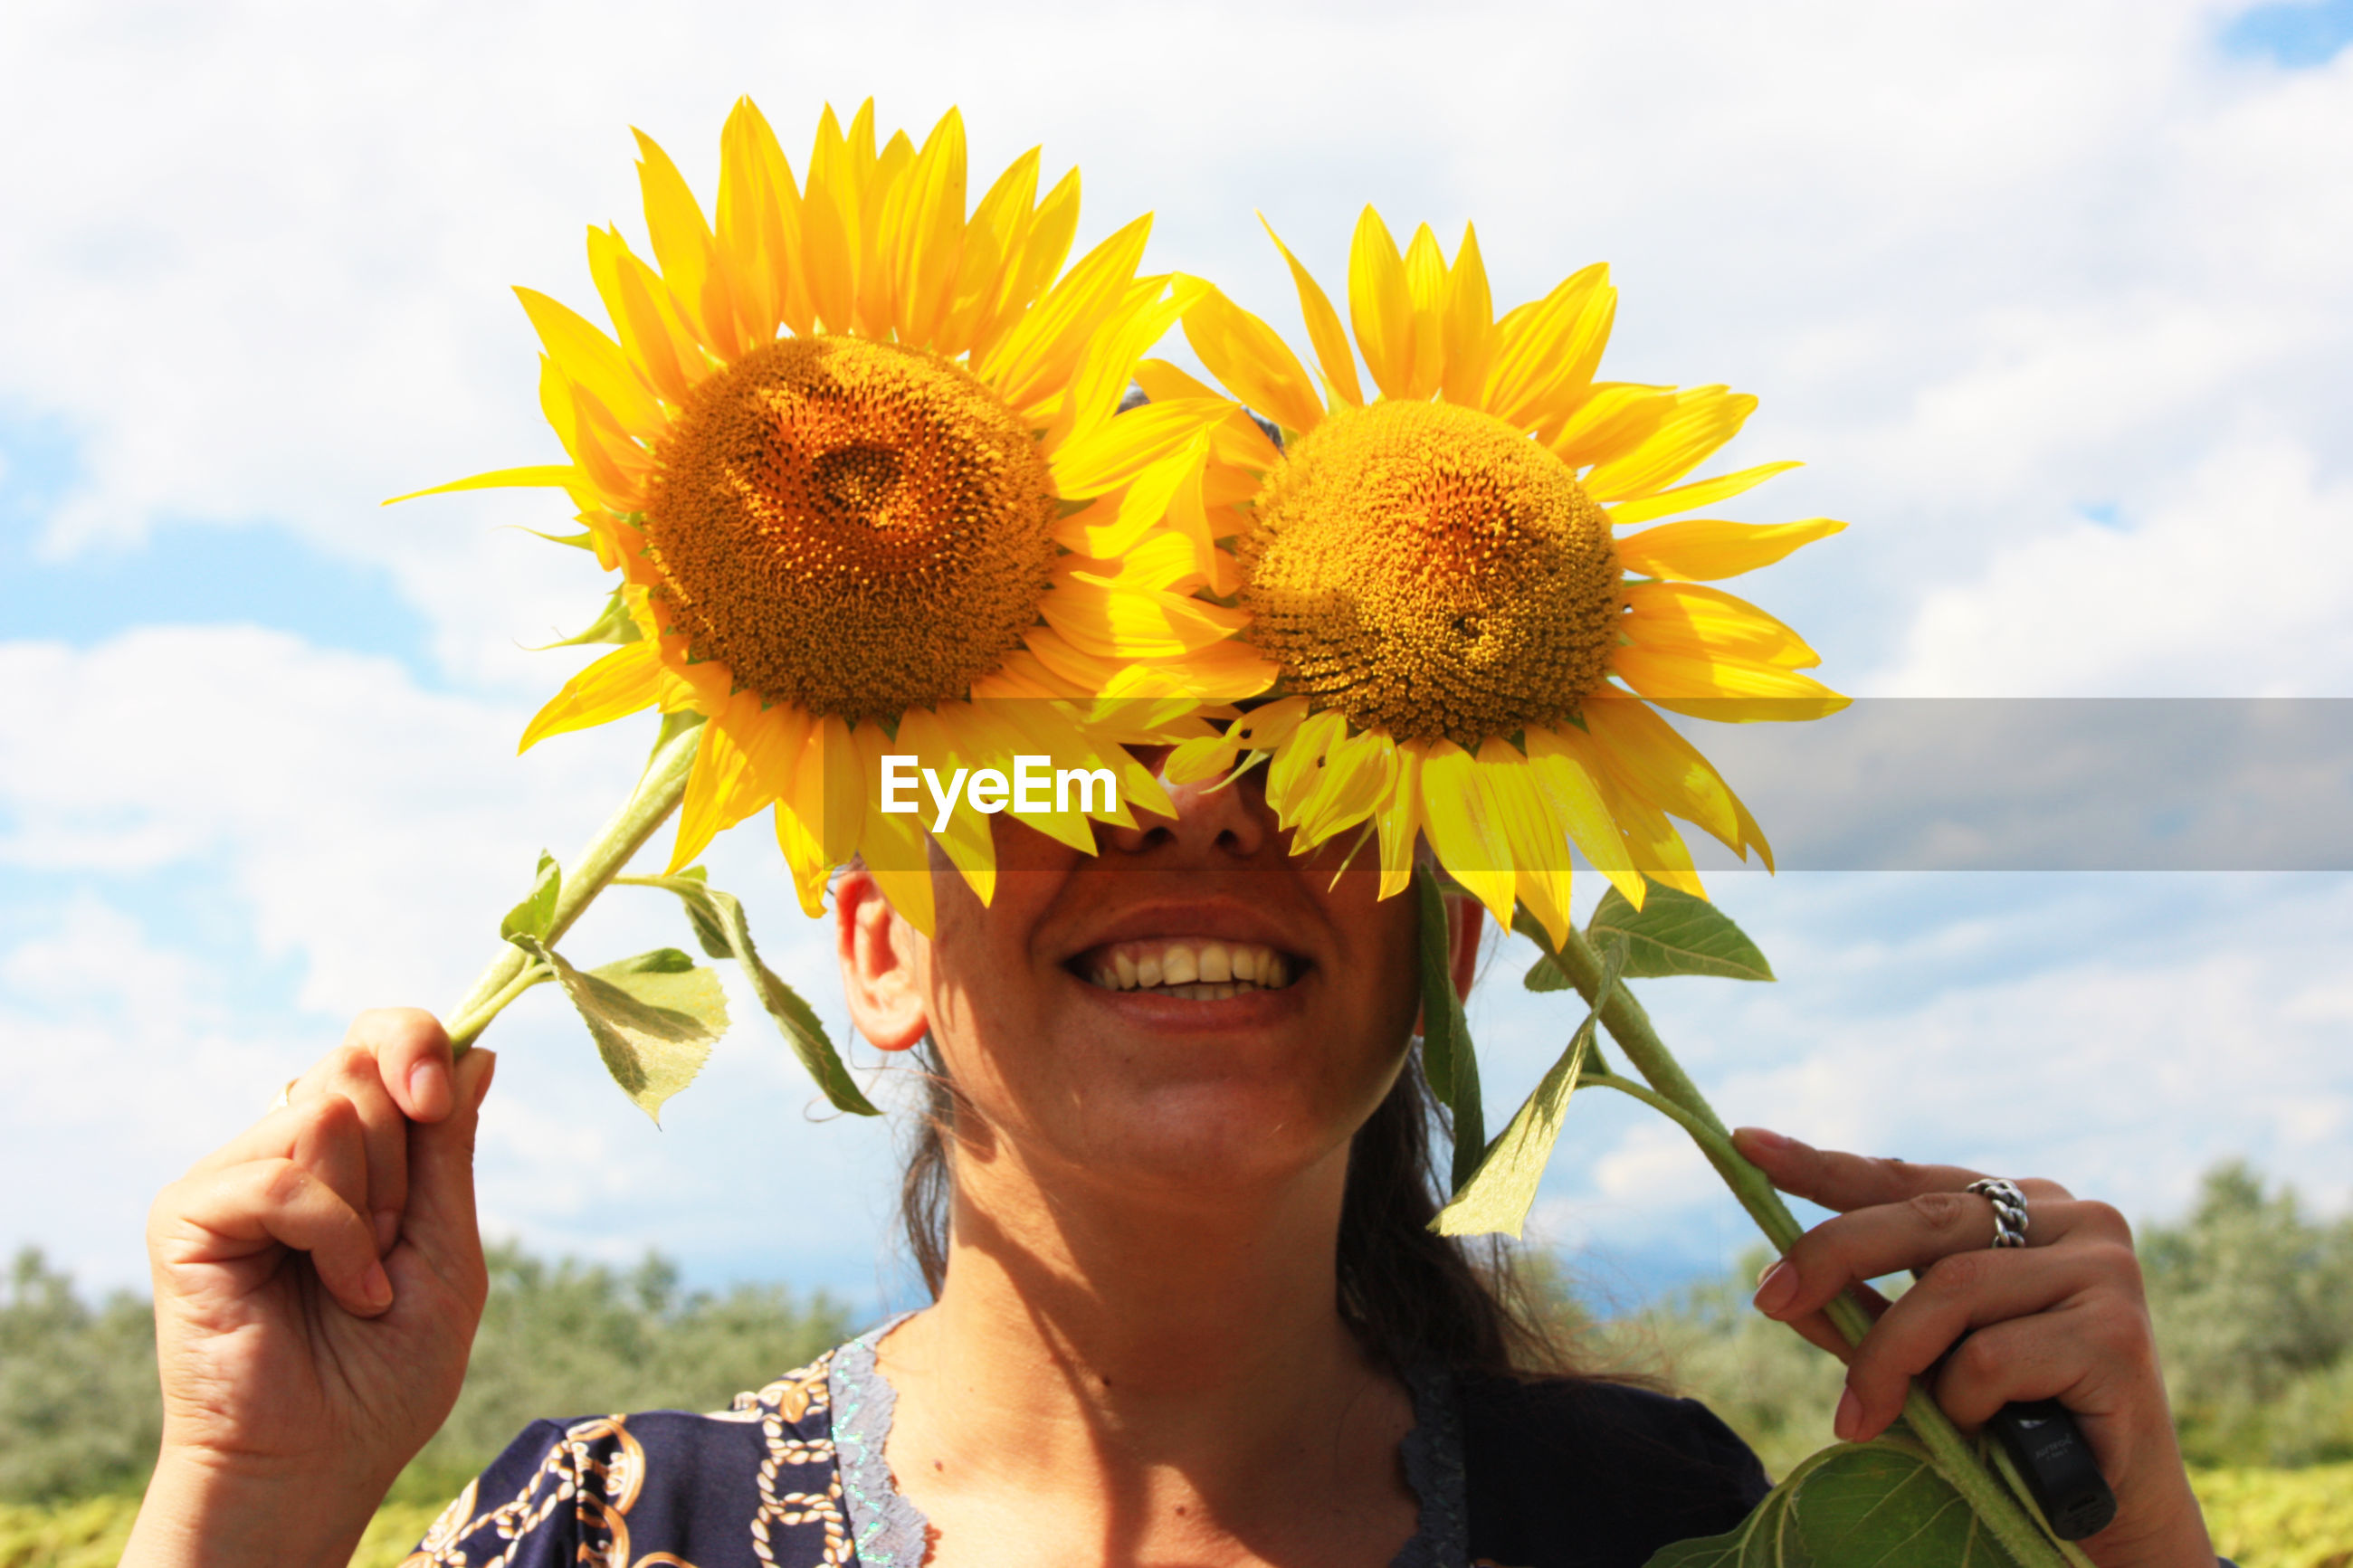 CLOSE-UP PORTRAIT OF SMILING YOUNG WOMAN HOLDING SUNFLOWER